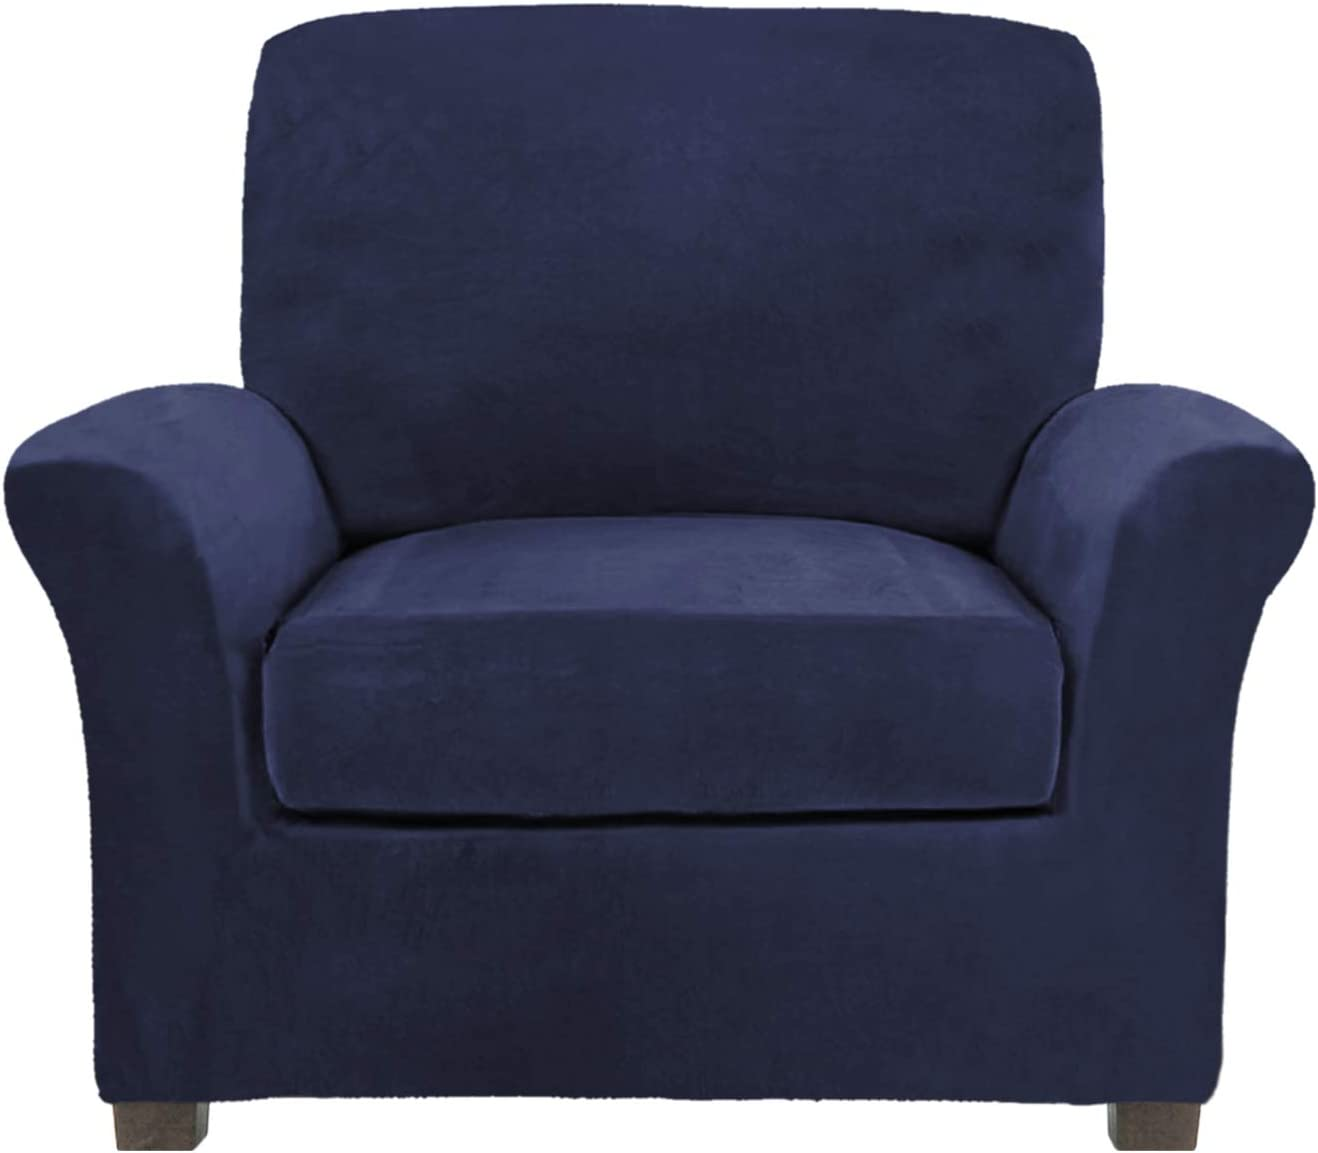 FY FIBER HOUSE Rich Velvet Stretch 2 Piece Chair Cover Chair Slipcover Sofa Cover Furniture Protector Couch Soft with Elastic Bottom Chair Couch Cover with Arms, Machine Washable Navy